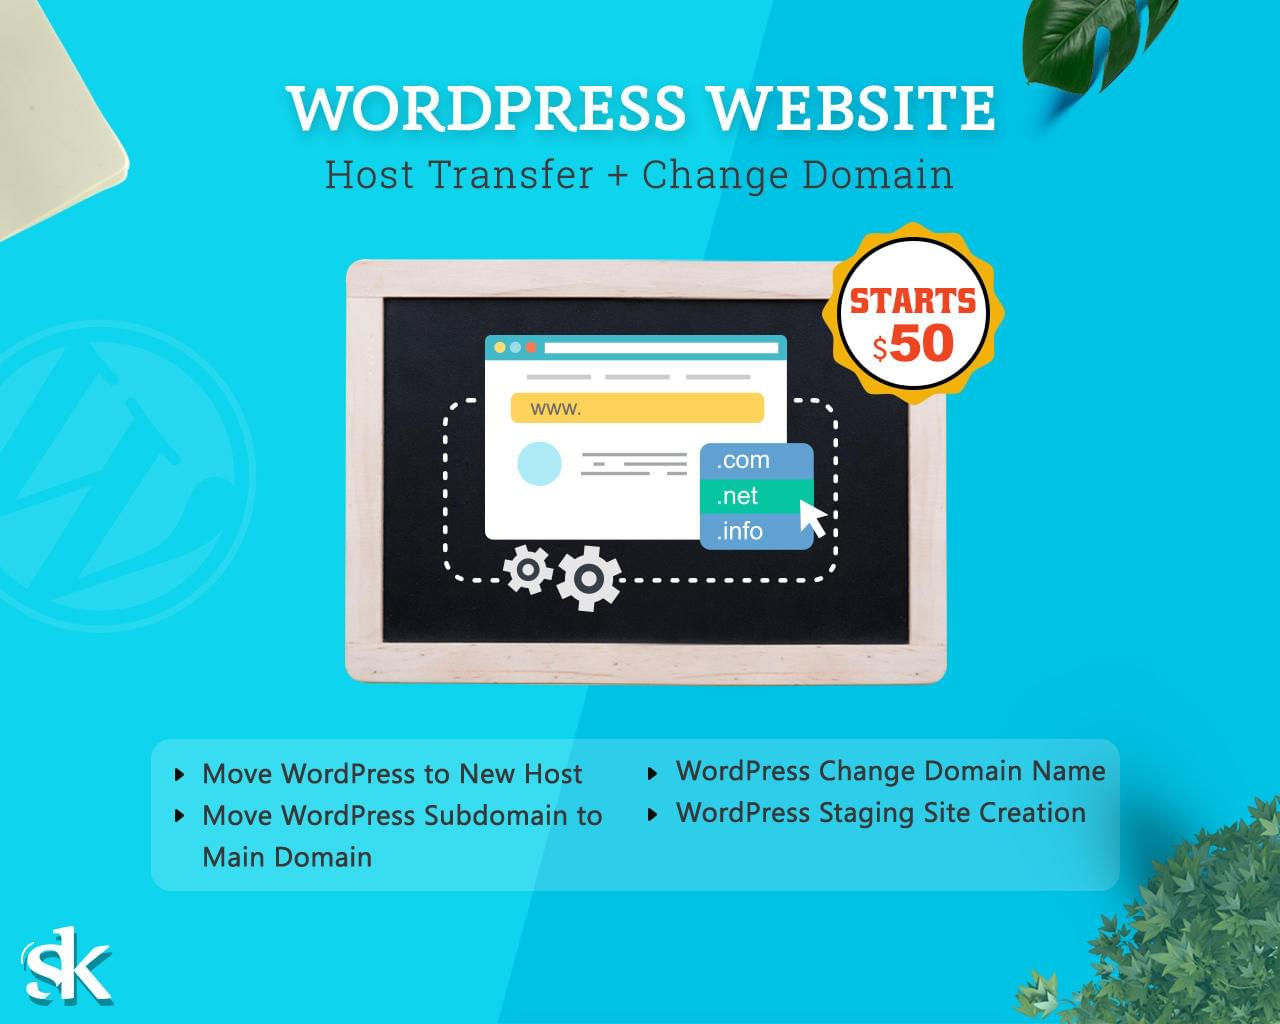 WordPress Website Host Transfer + Change Domain by SK-Web-Solutions - 113008